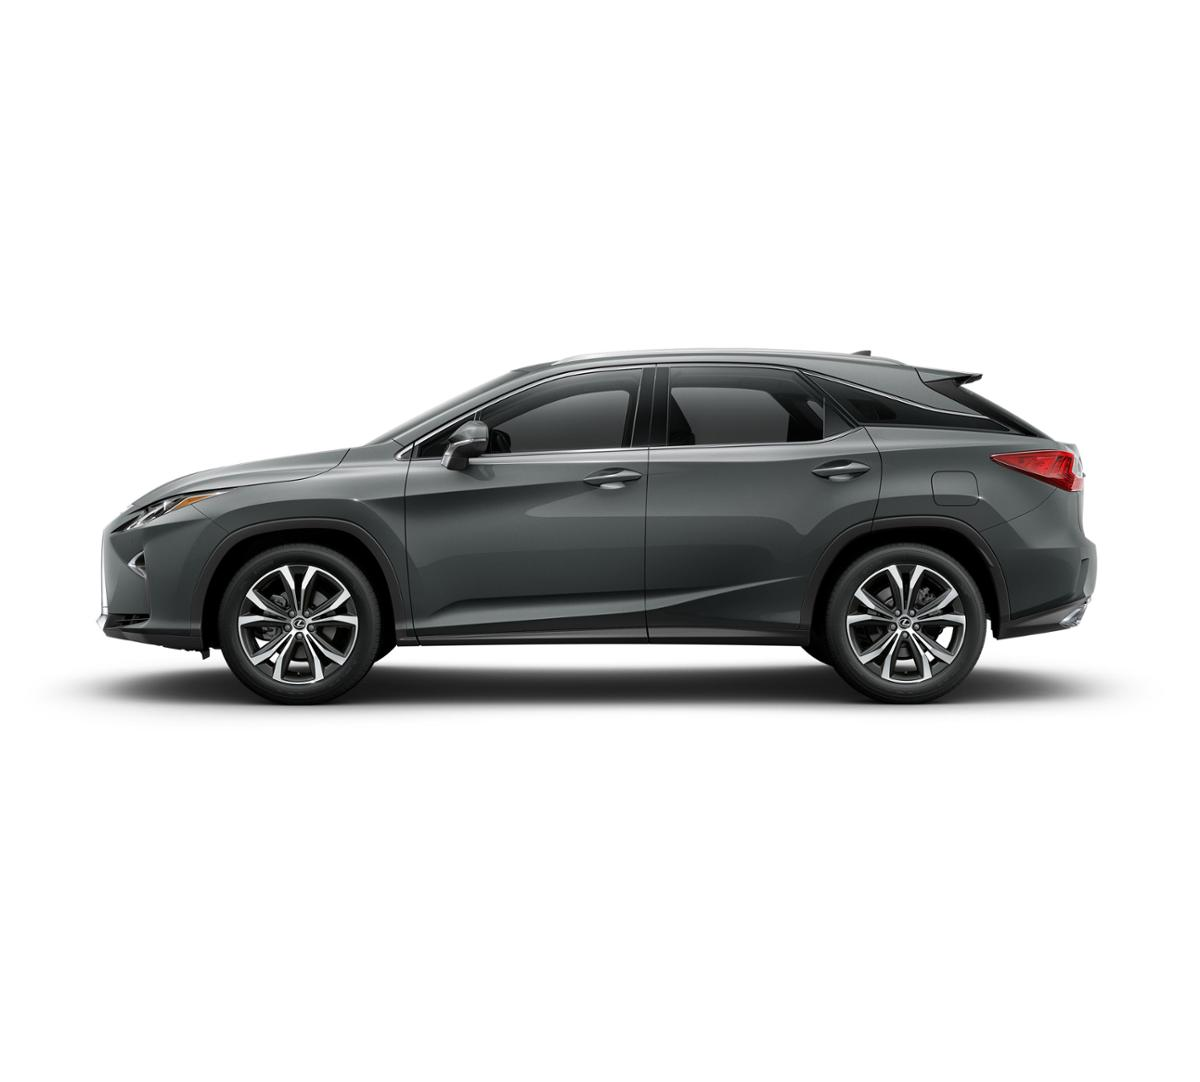 Lexus Rx 350 Lease: 2018 Nebula Gray Pearl Lexus RX 350 For Sale In San Rafael